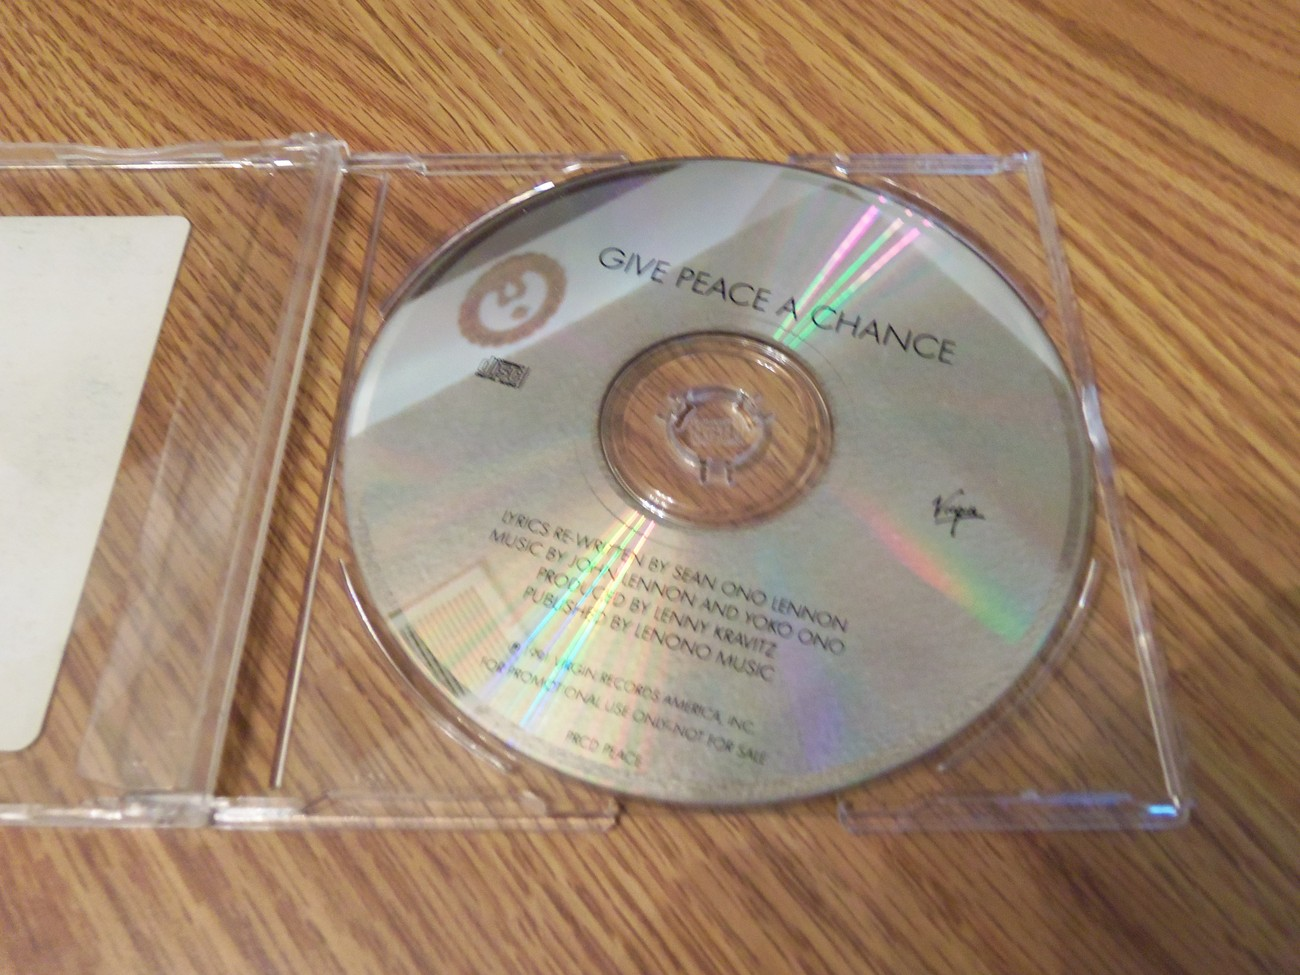 Give Peace A Chance 1991 Virgin Promo Cd Lennon Peter Gabriel Tom Petty Iggy